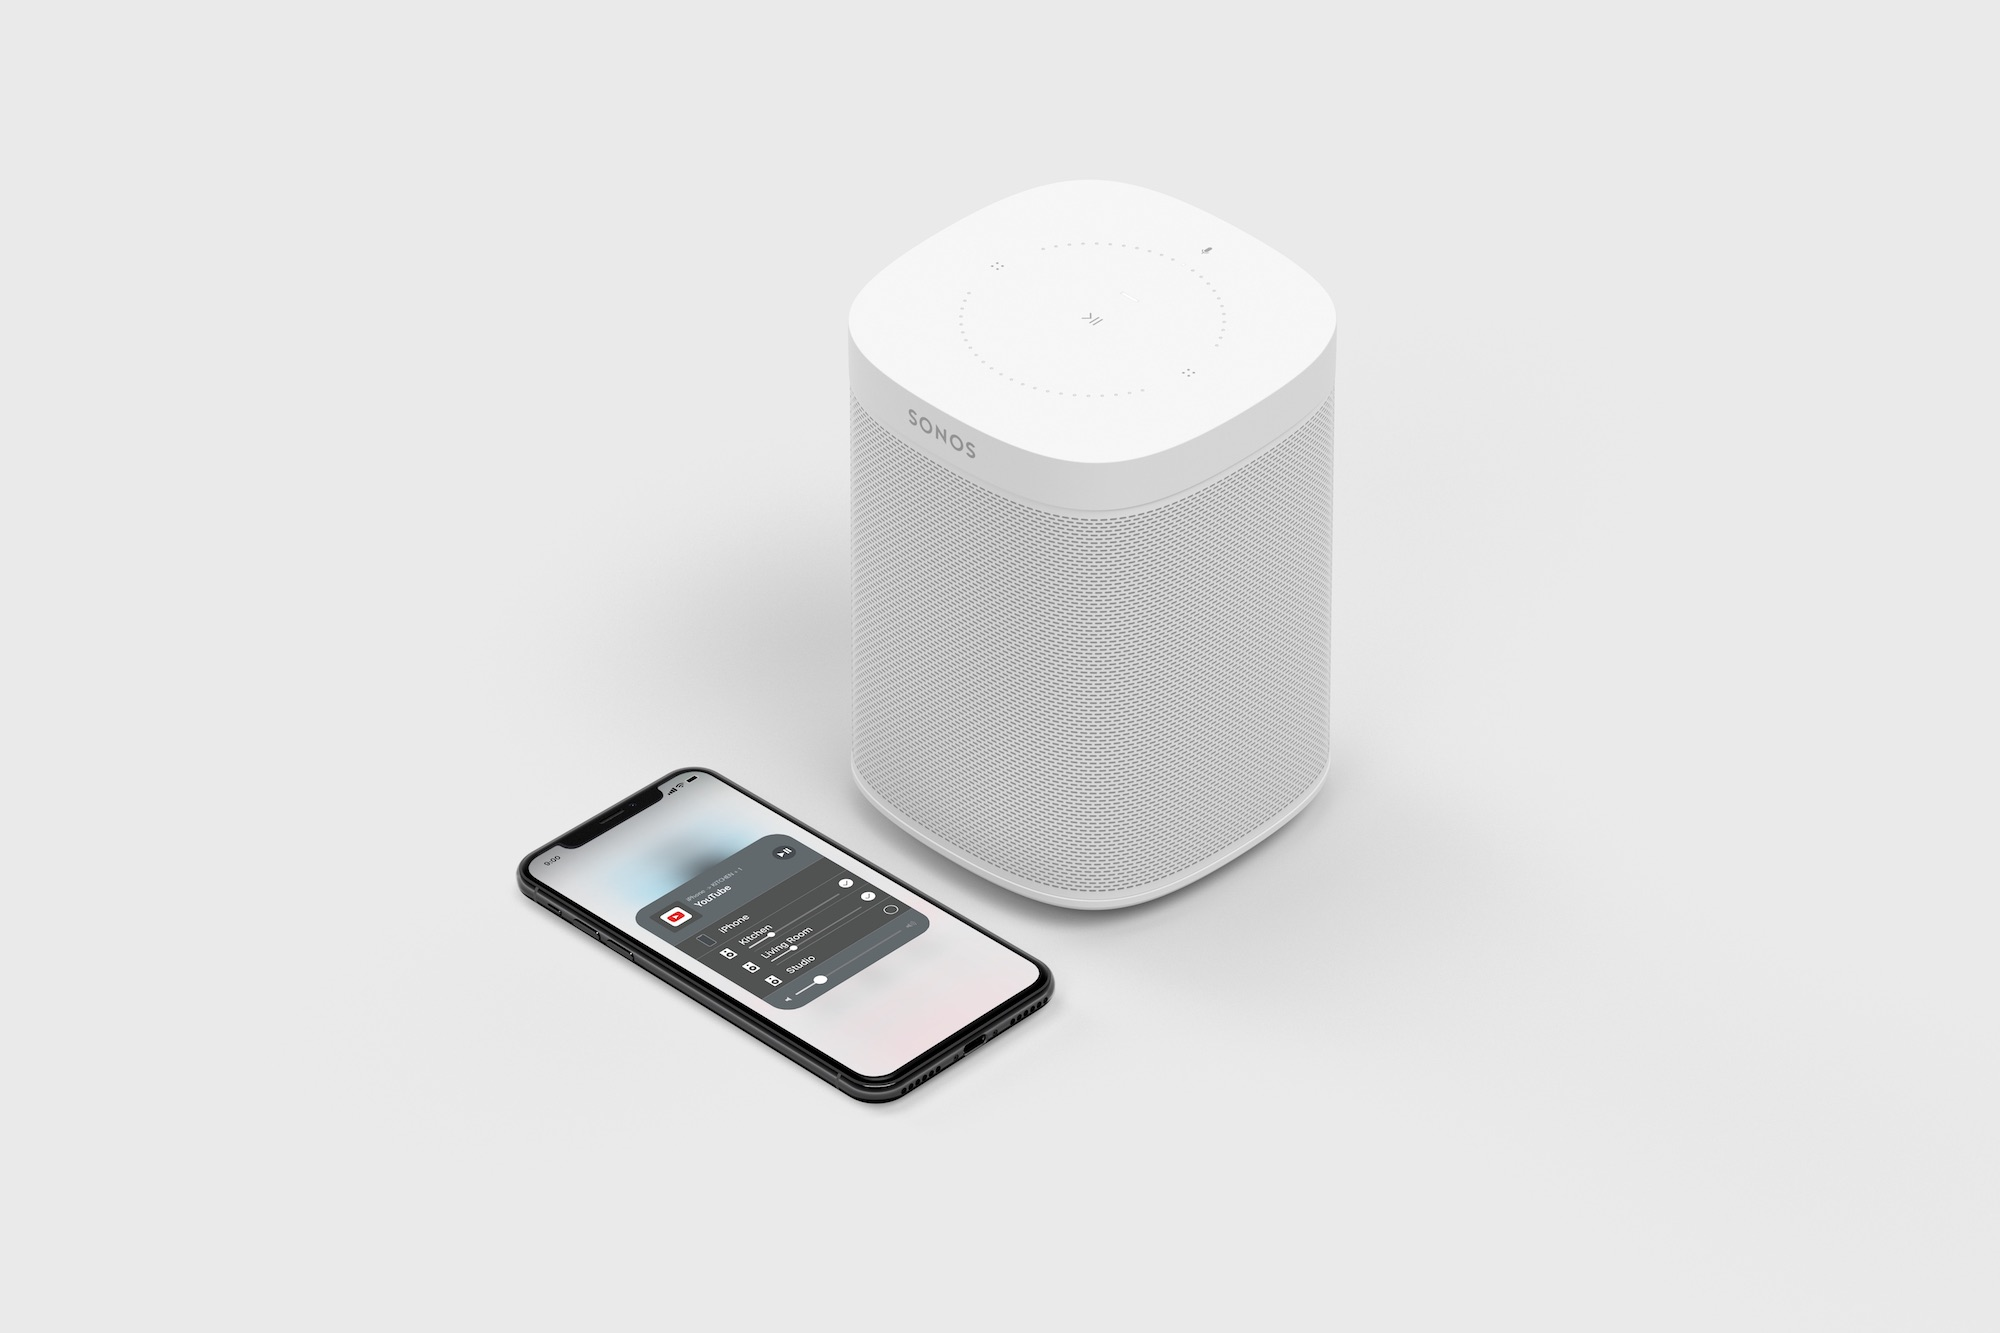 Alongside the Beam announcement, Sonos said on Wednesday that AirPlay 2 will arrive on a handful of Sonos speakers in July. This will technically get Siri onto Sonos speakers but not to the extent of Alexa and, potentially, Google Assistant.